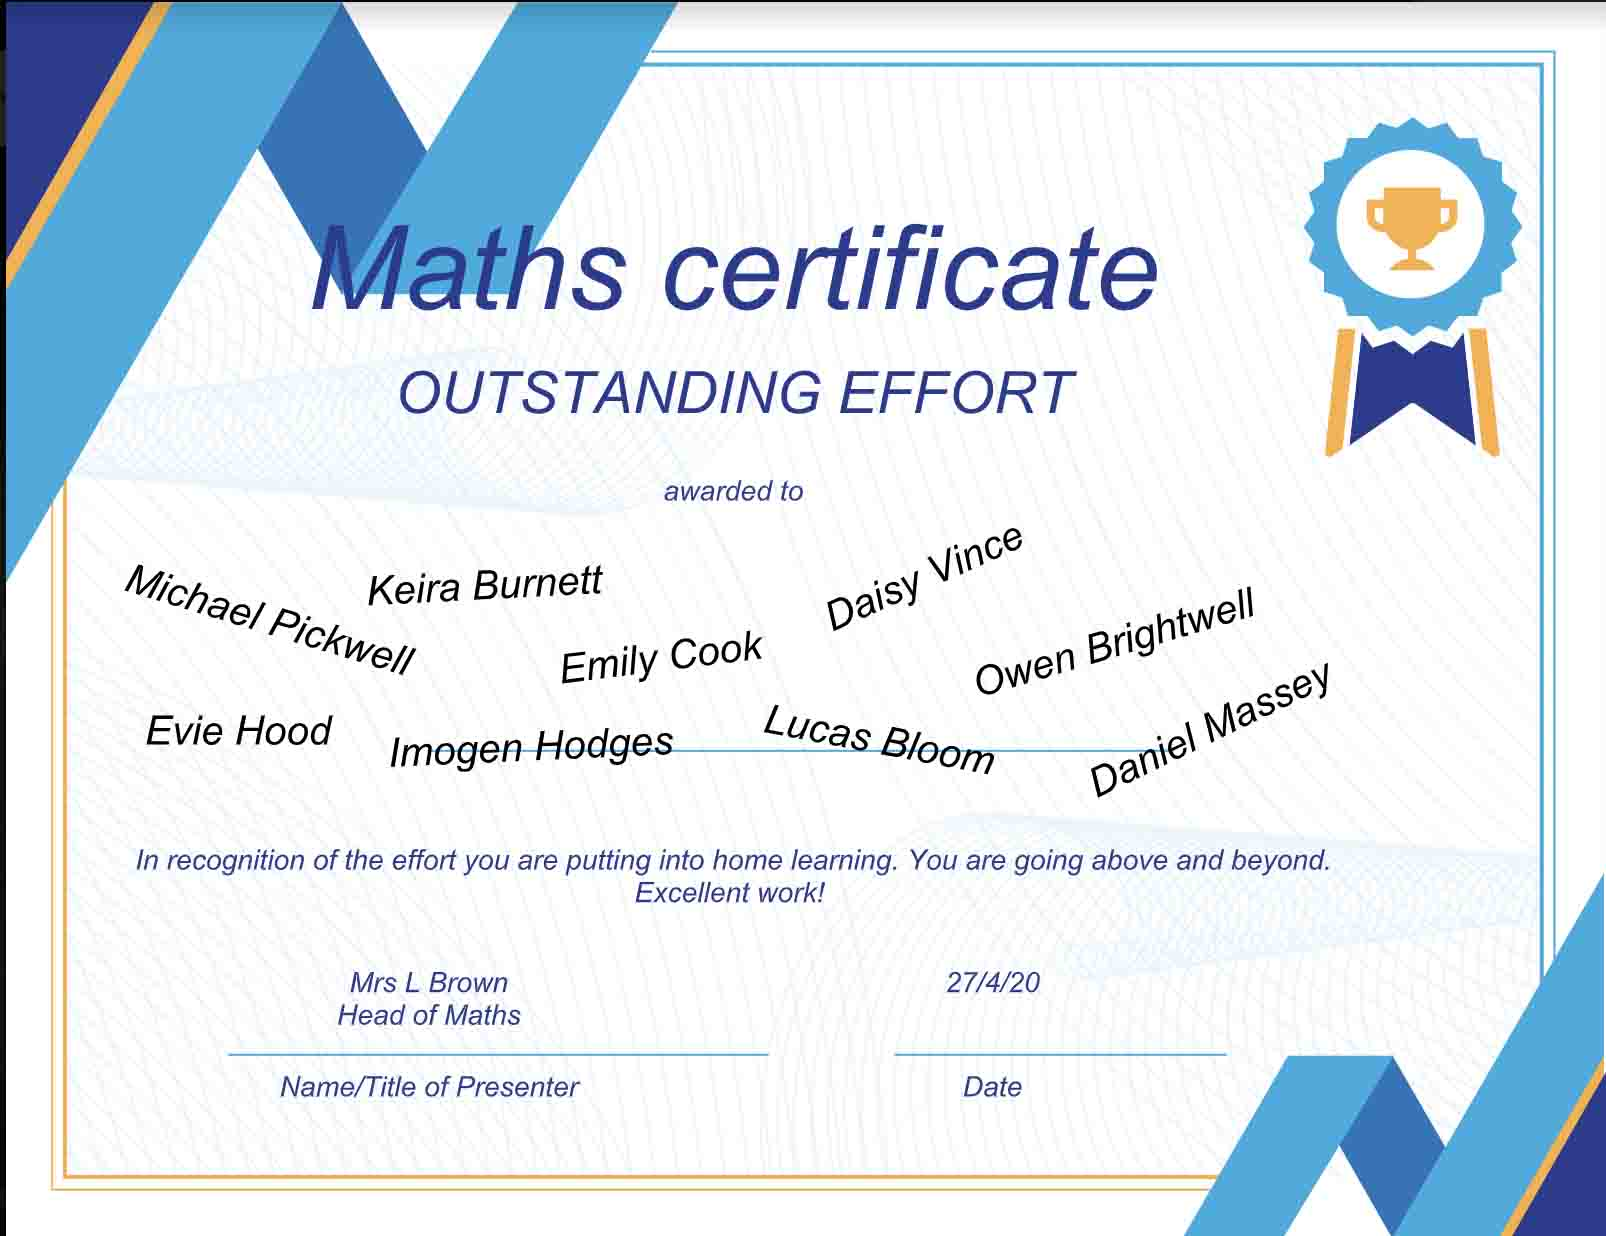 27/04/20 - Outstanding work in Mathsn